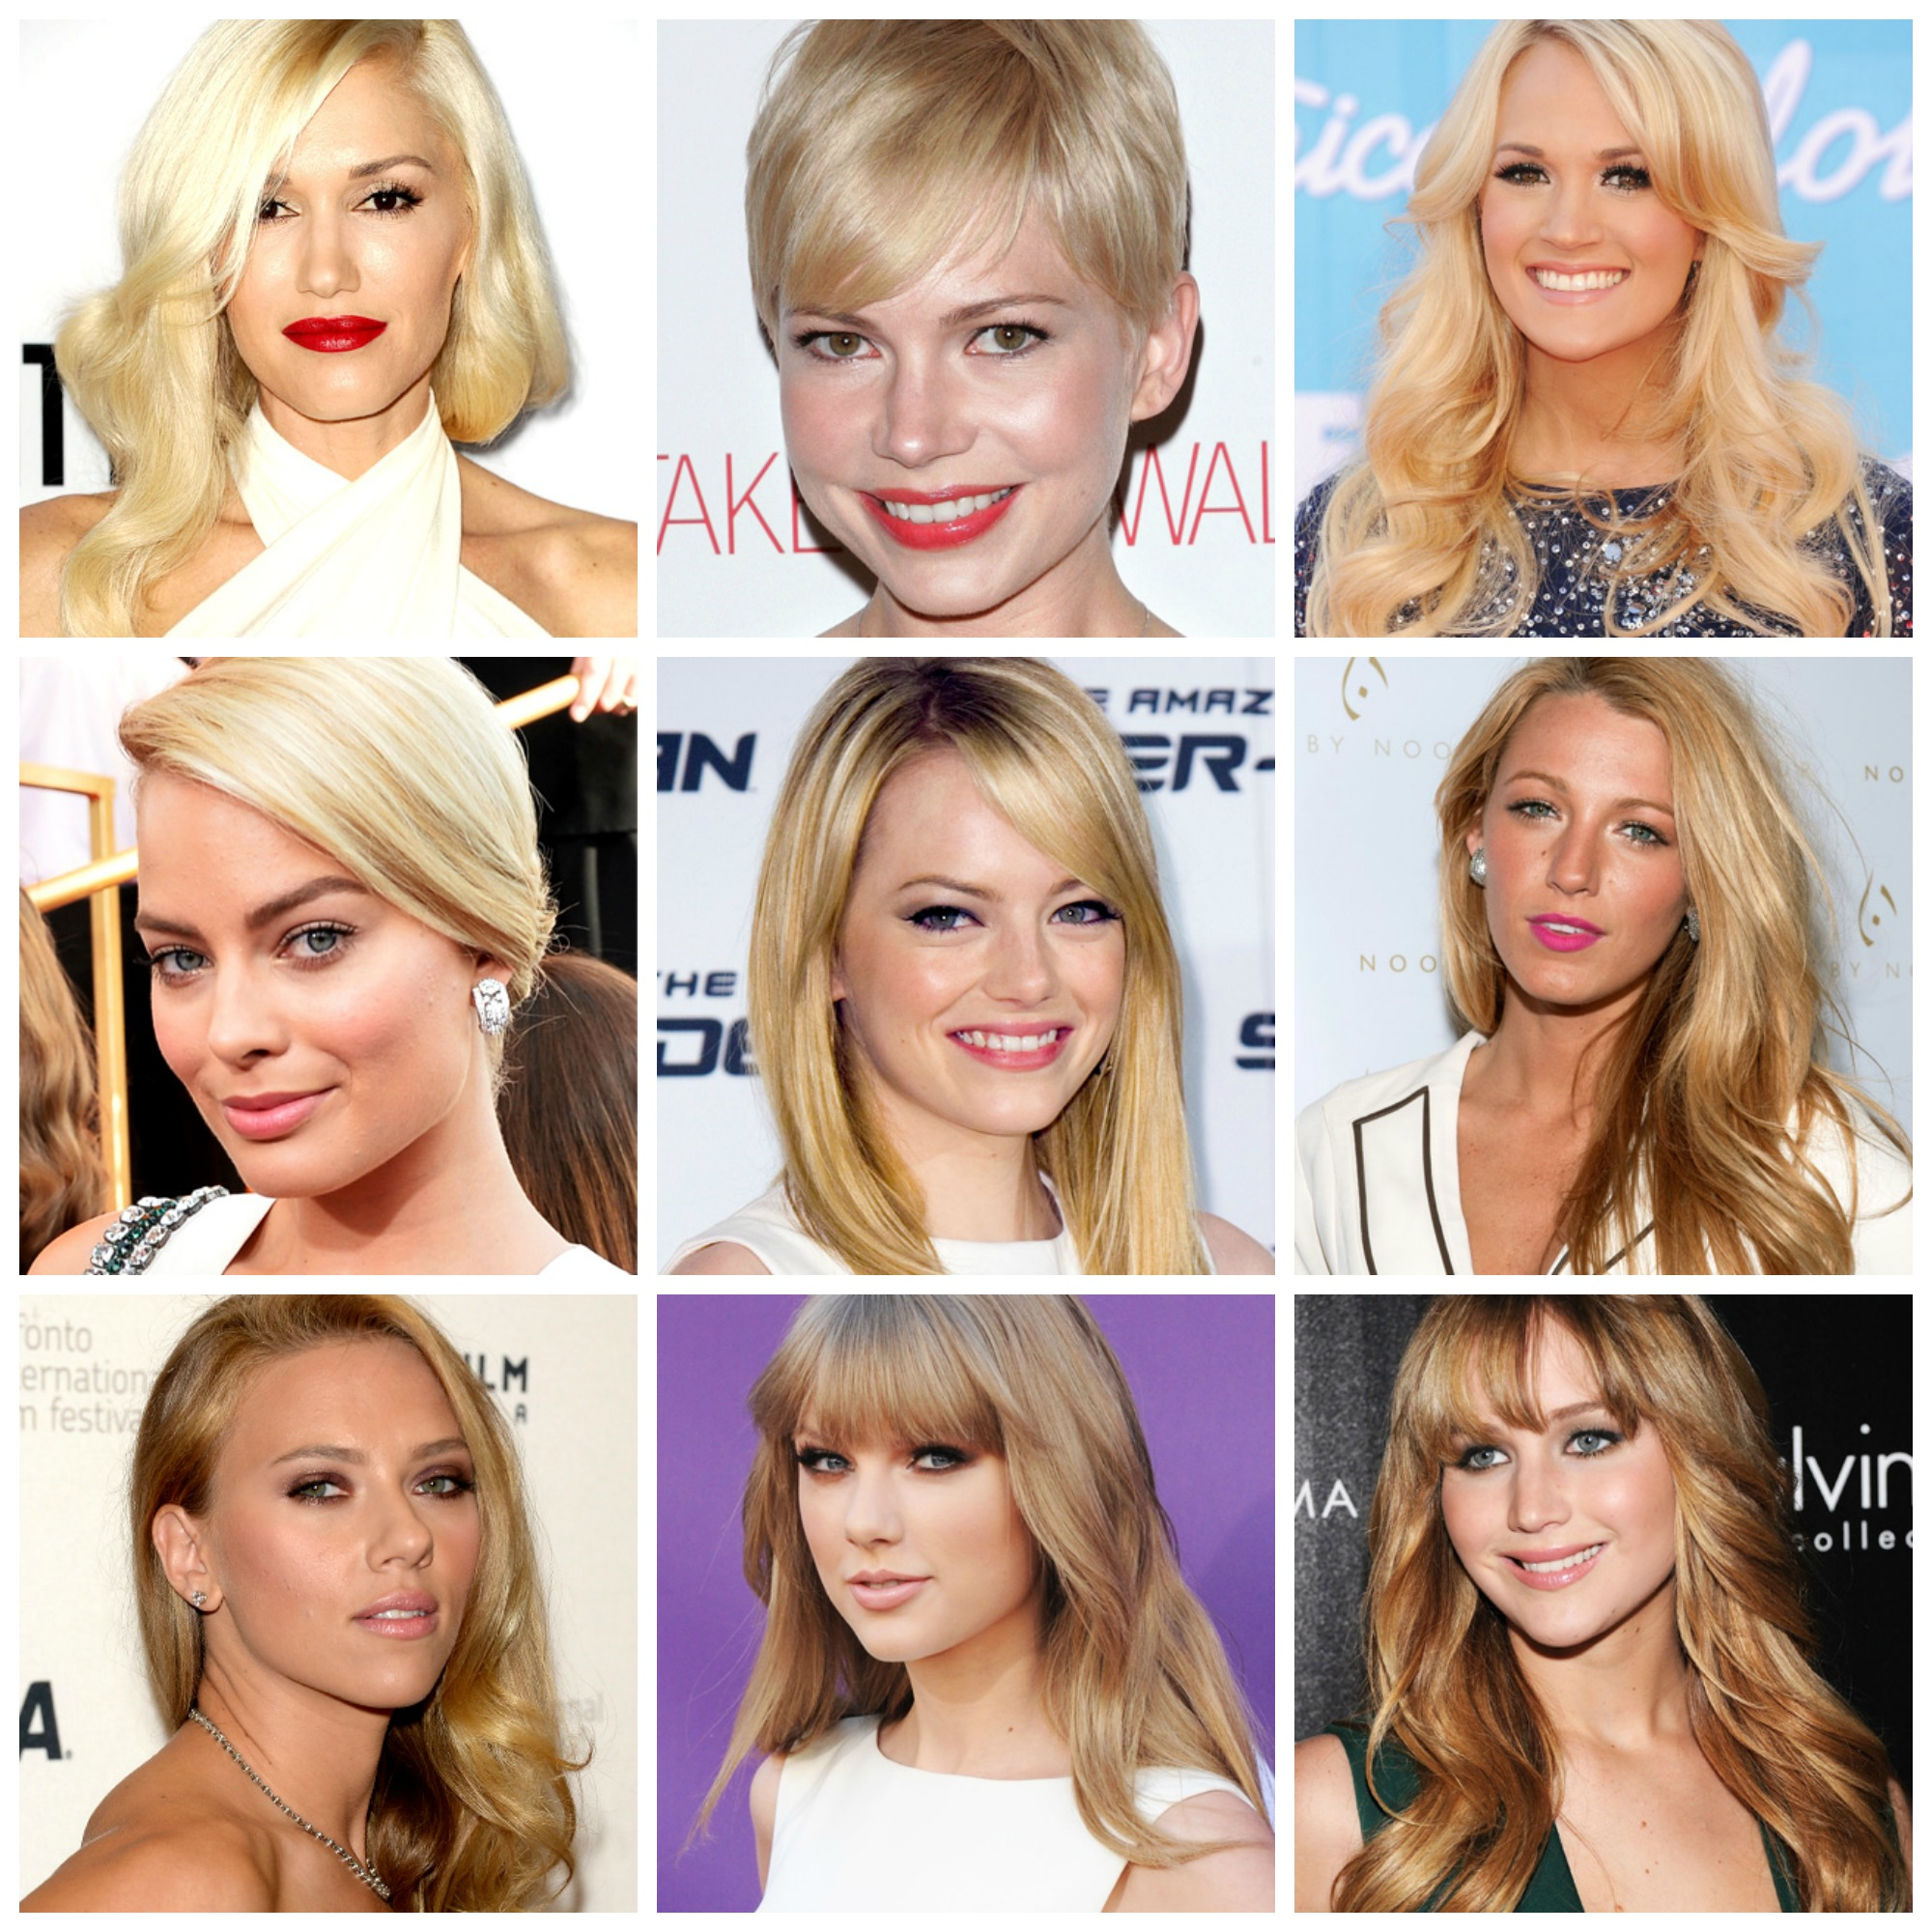 What Blonde Hair Shade Should You Have? | Playbuzz